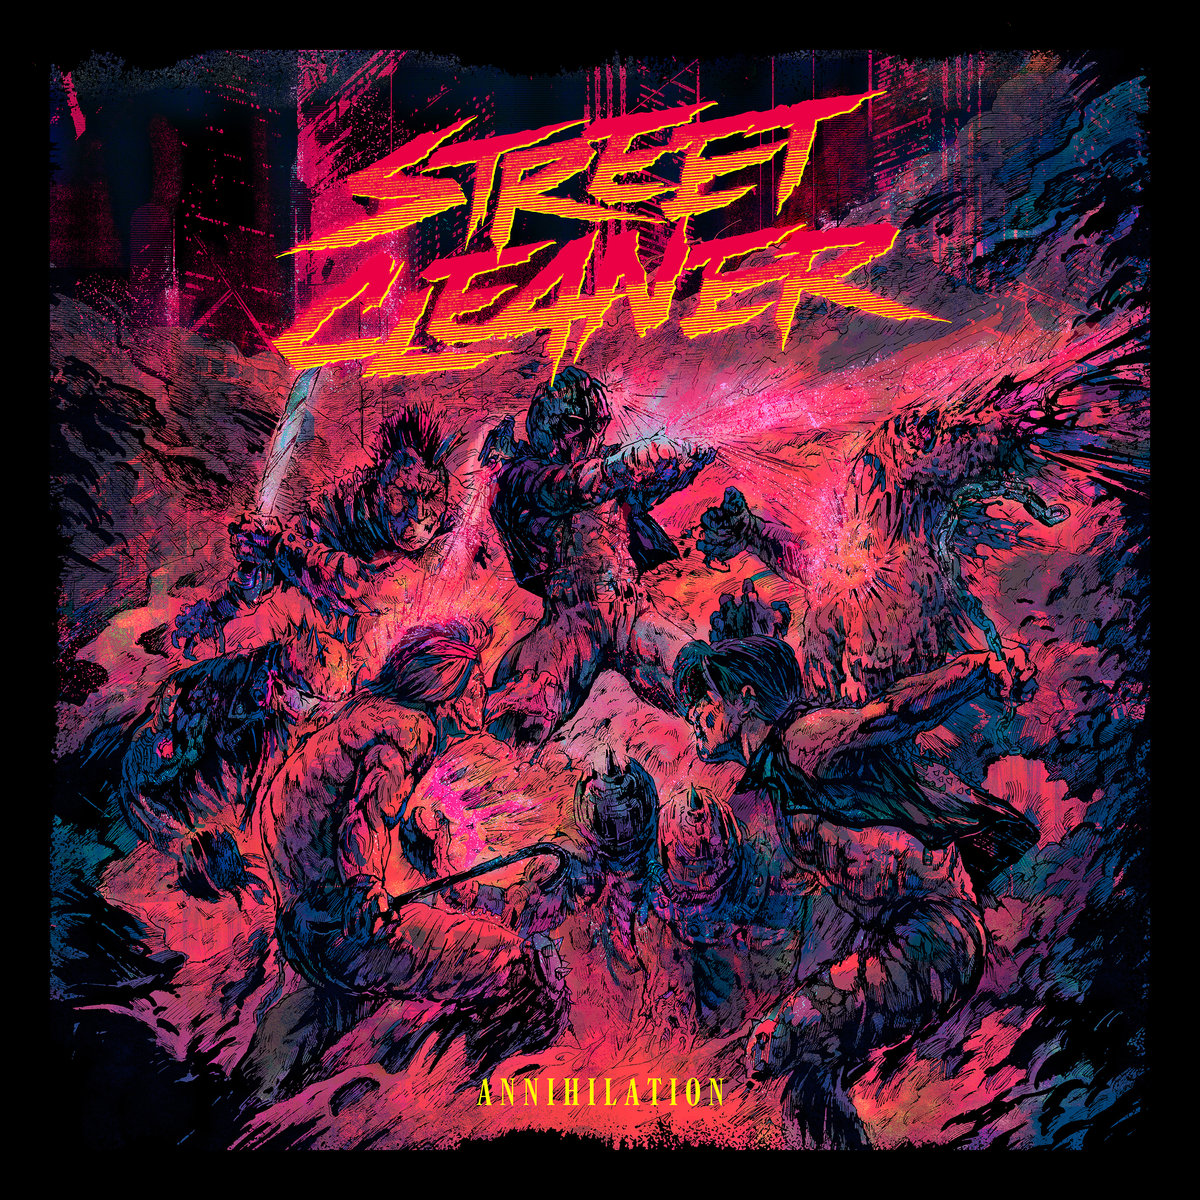 a4213510820 10 - Street Cleaner - Annihilation Release and Tour News